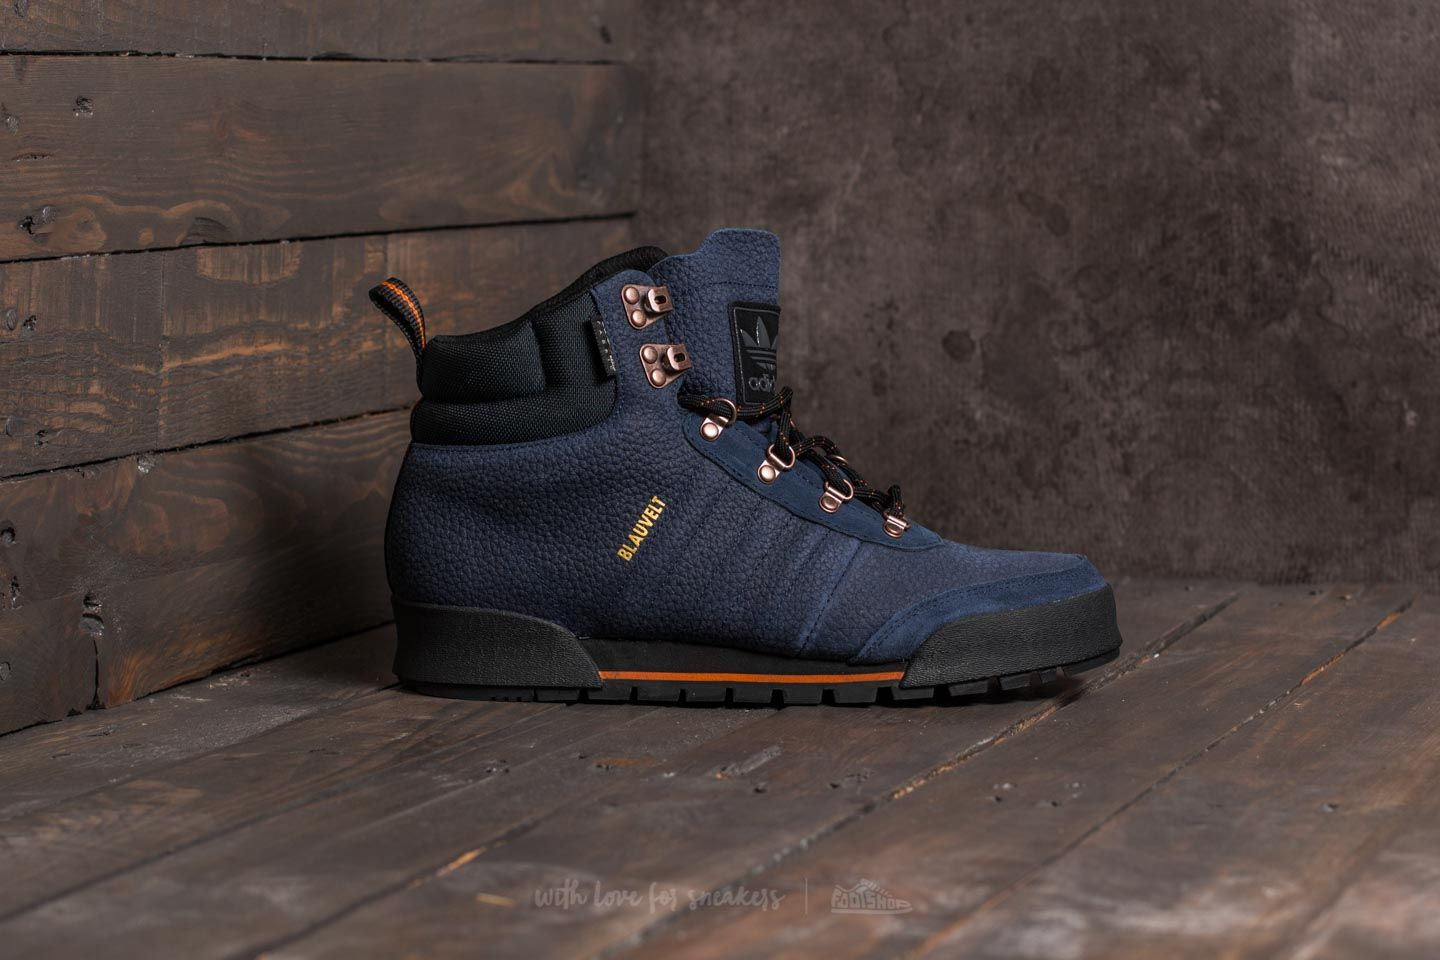 54976a02d9d adidas Jake Boot 2.0 Collegiate Navy/ Tactile Orange/ Core Black ...